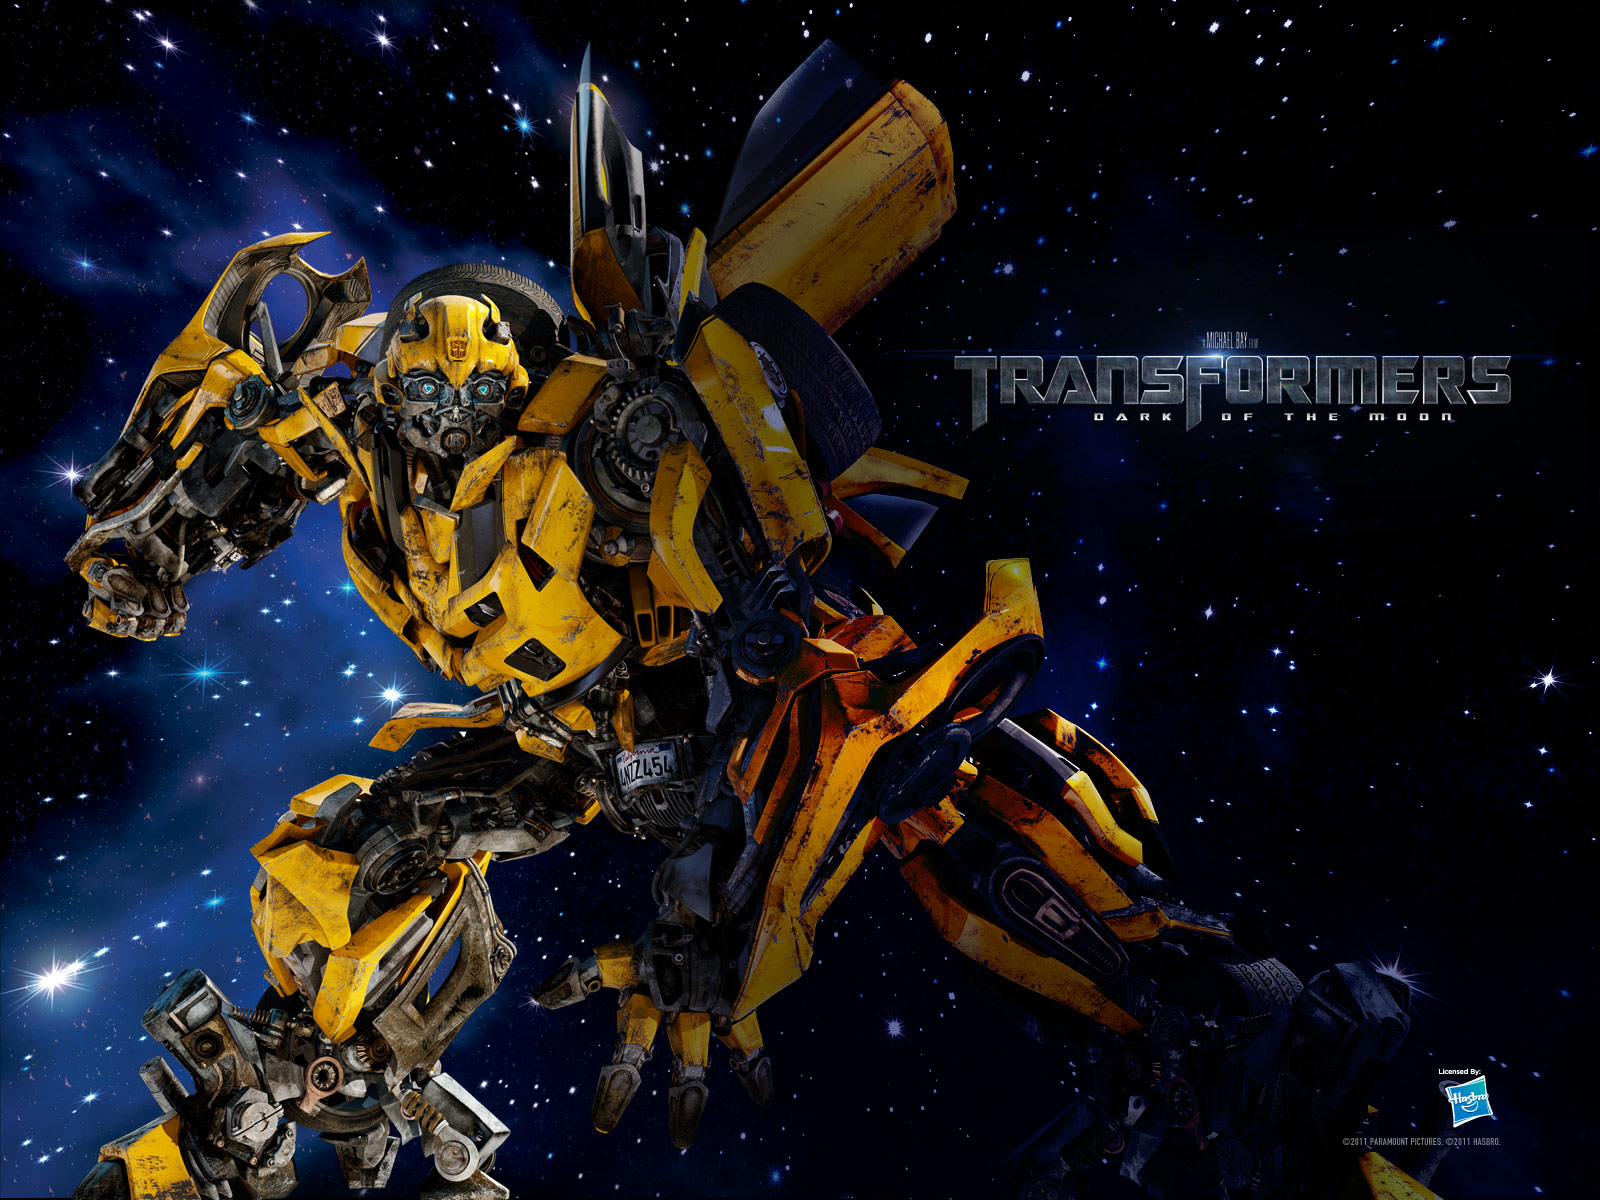 Transformers Matrix Wallpapers Bumblebee Movie Hd HD Wallpapers Download Free Images Wallpaper [1000image.com]